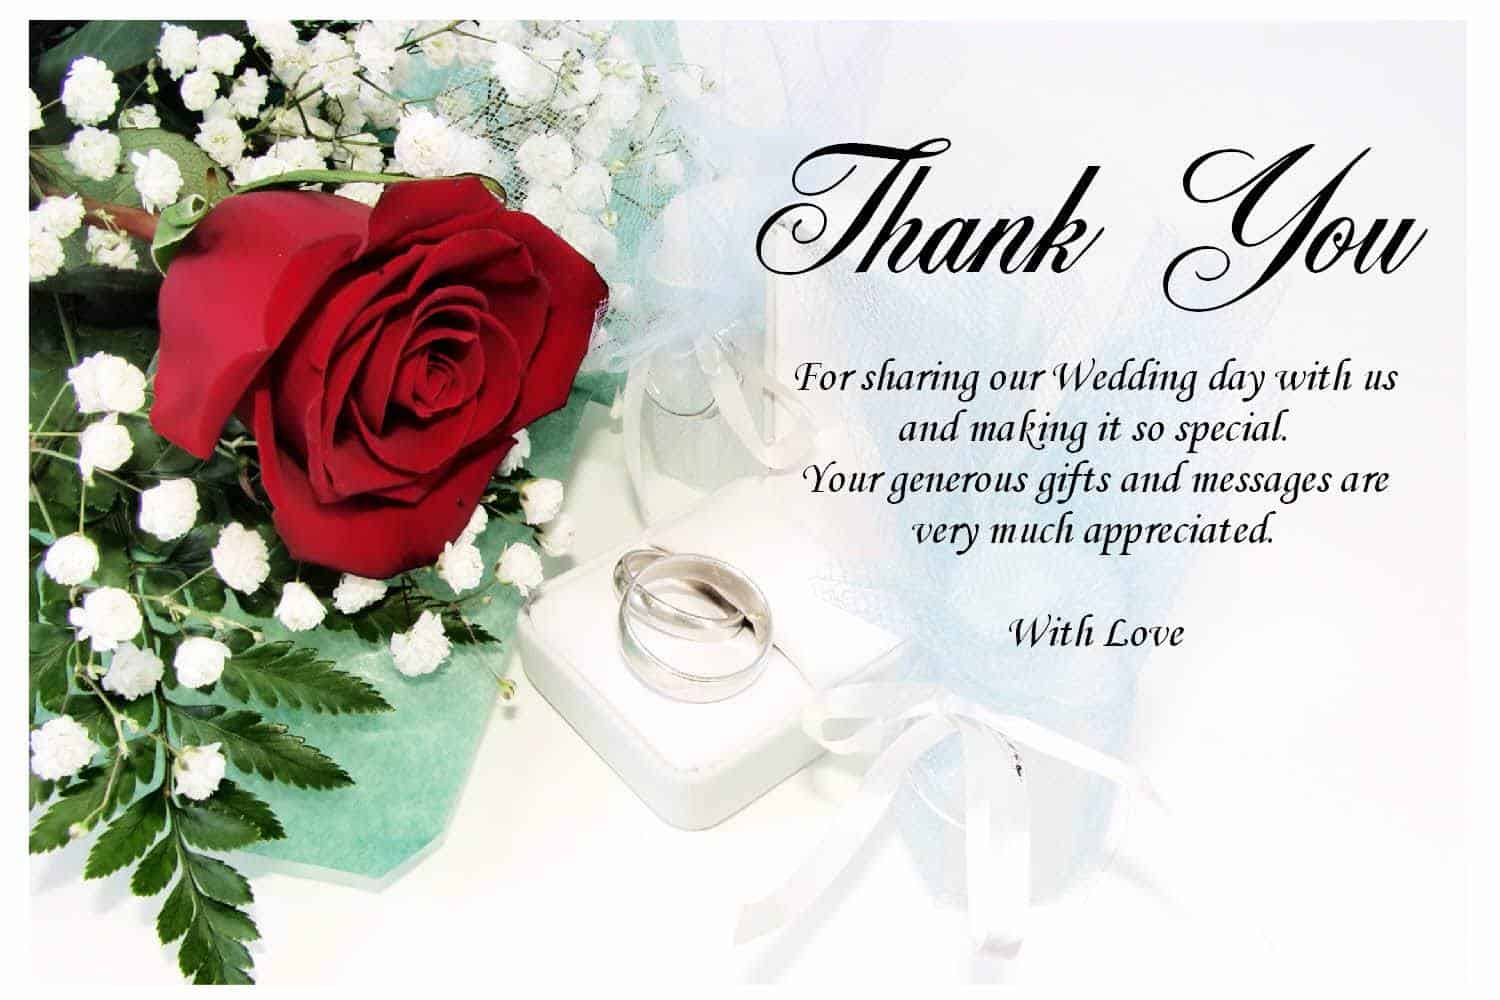 Thank You For A Wedding Gift: Thank You Letter After Wedding Ceremony